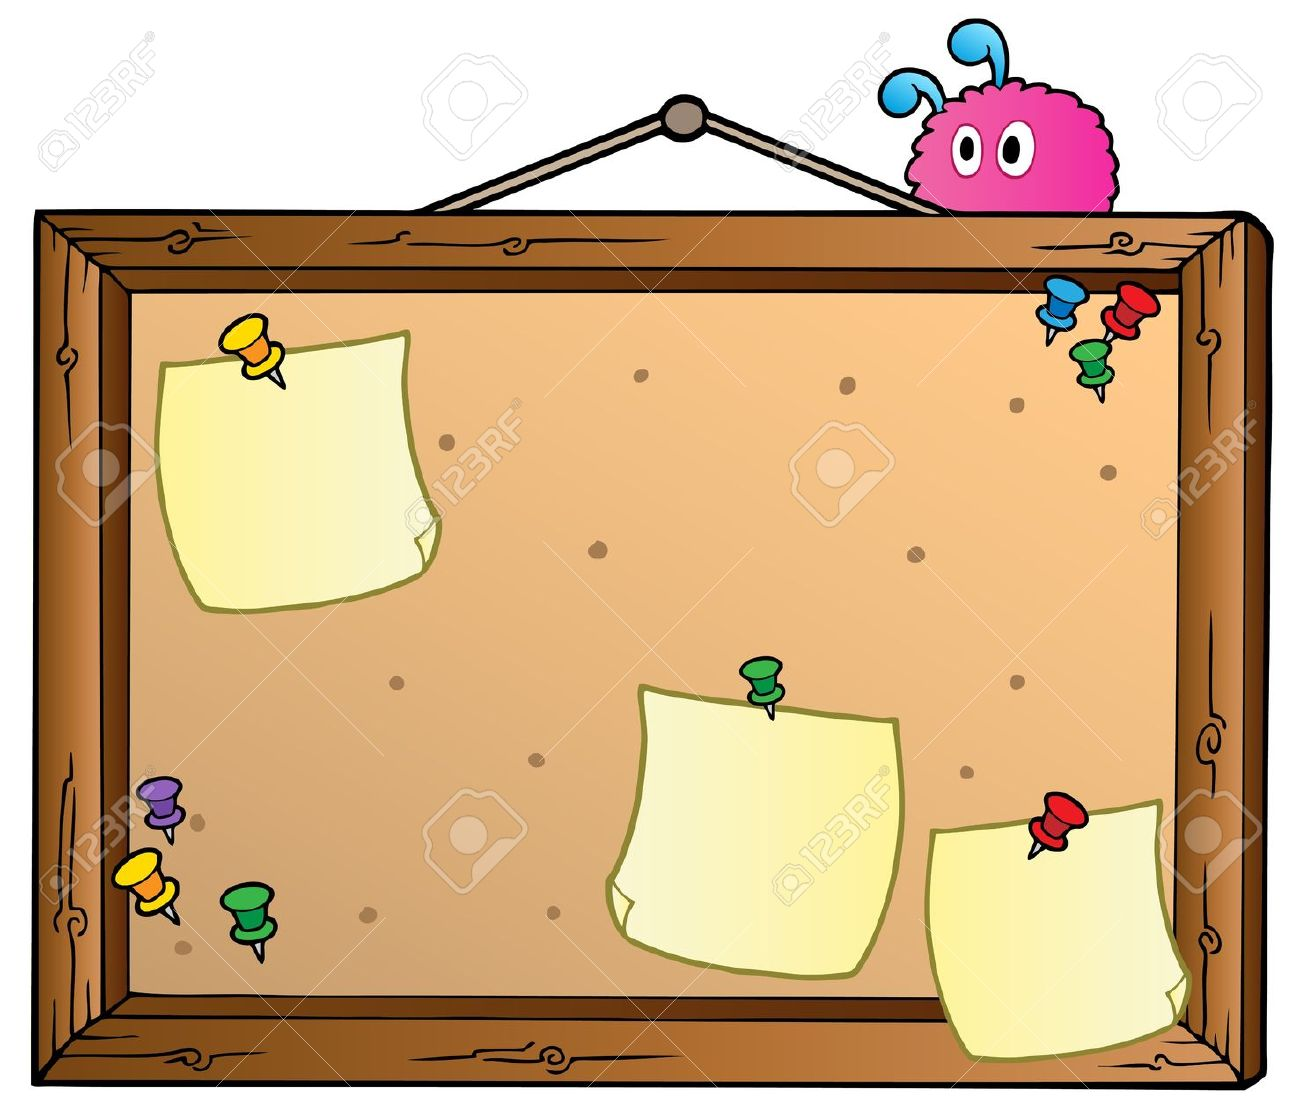 Cartoon Bulletin Board Royalty Free Cliparts, Vectors, And Stock.